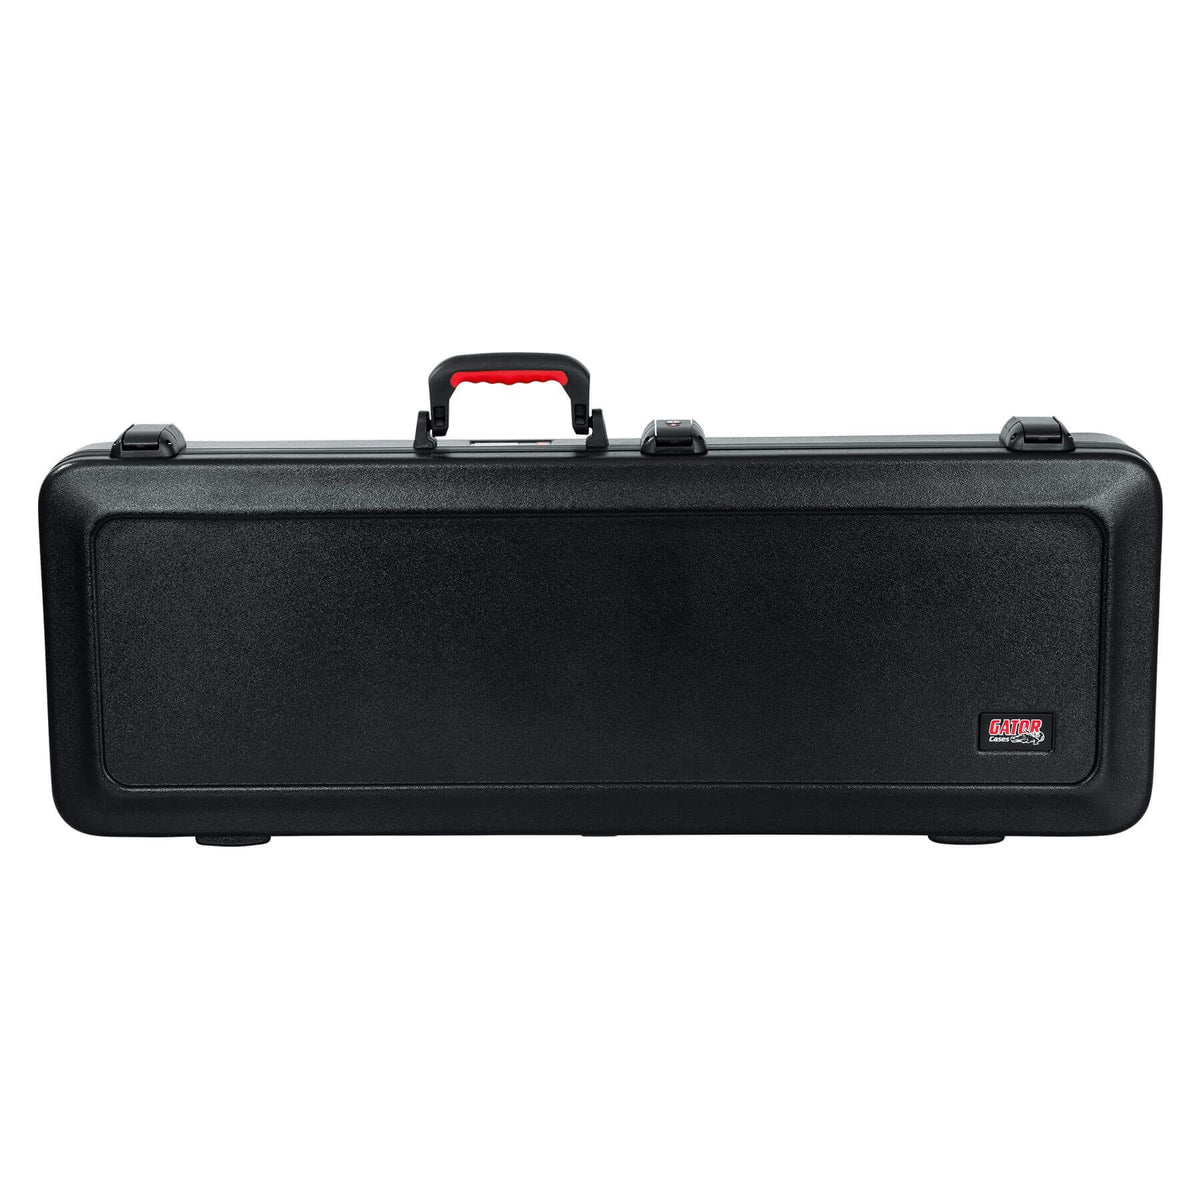 Gator TSA Electric Case fits Ibanez JS1000 2002, GRG170